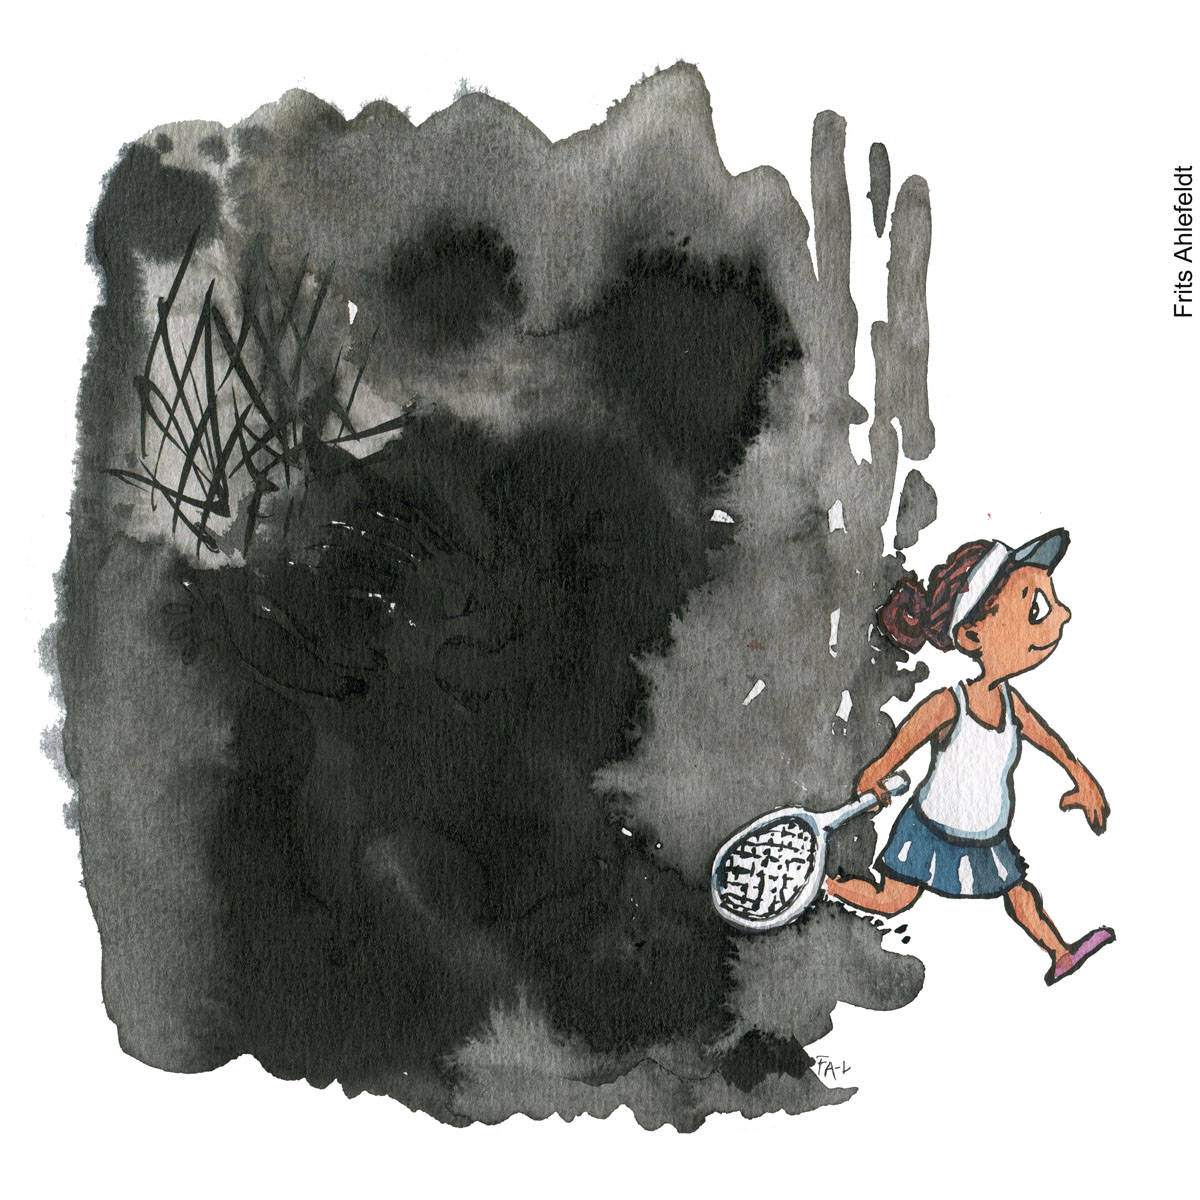 Naomi Osaka with tennis racket walks out of shadow color illustration by Frits Ahlefeldt. Drawn Journalism